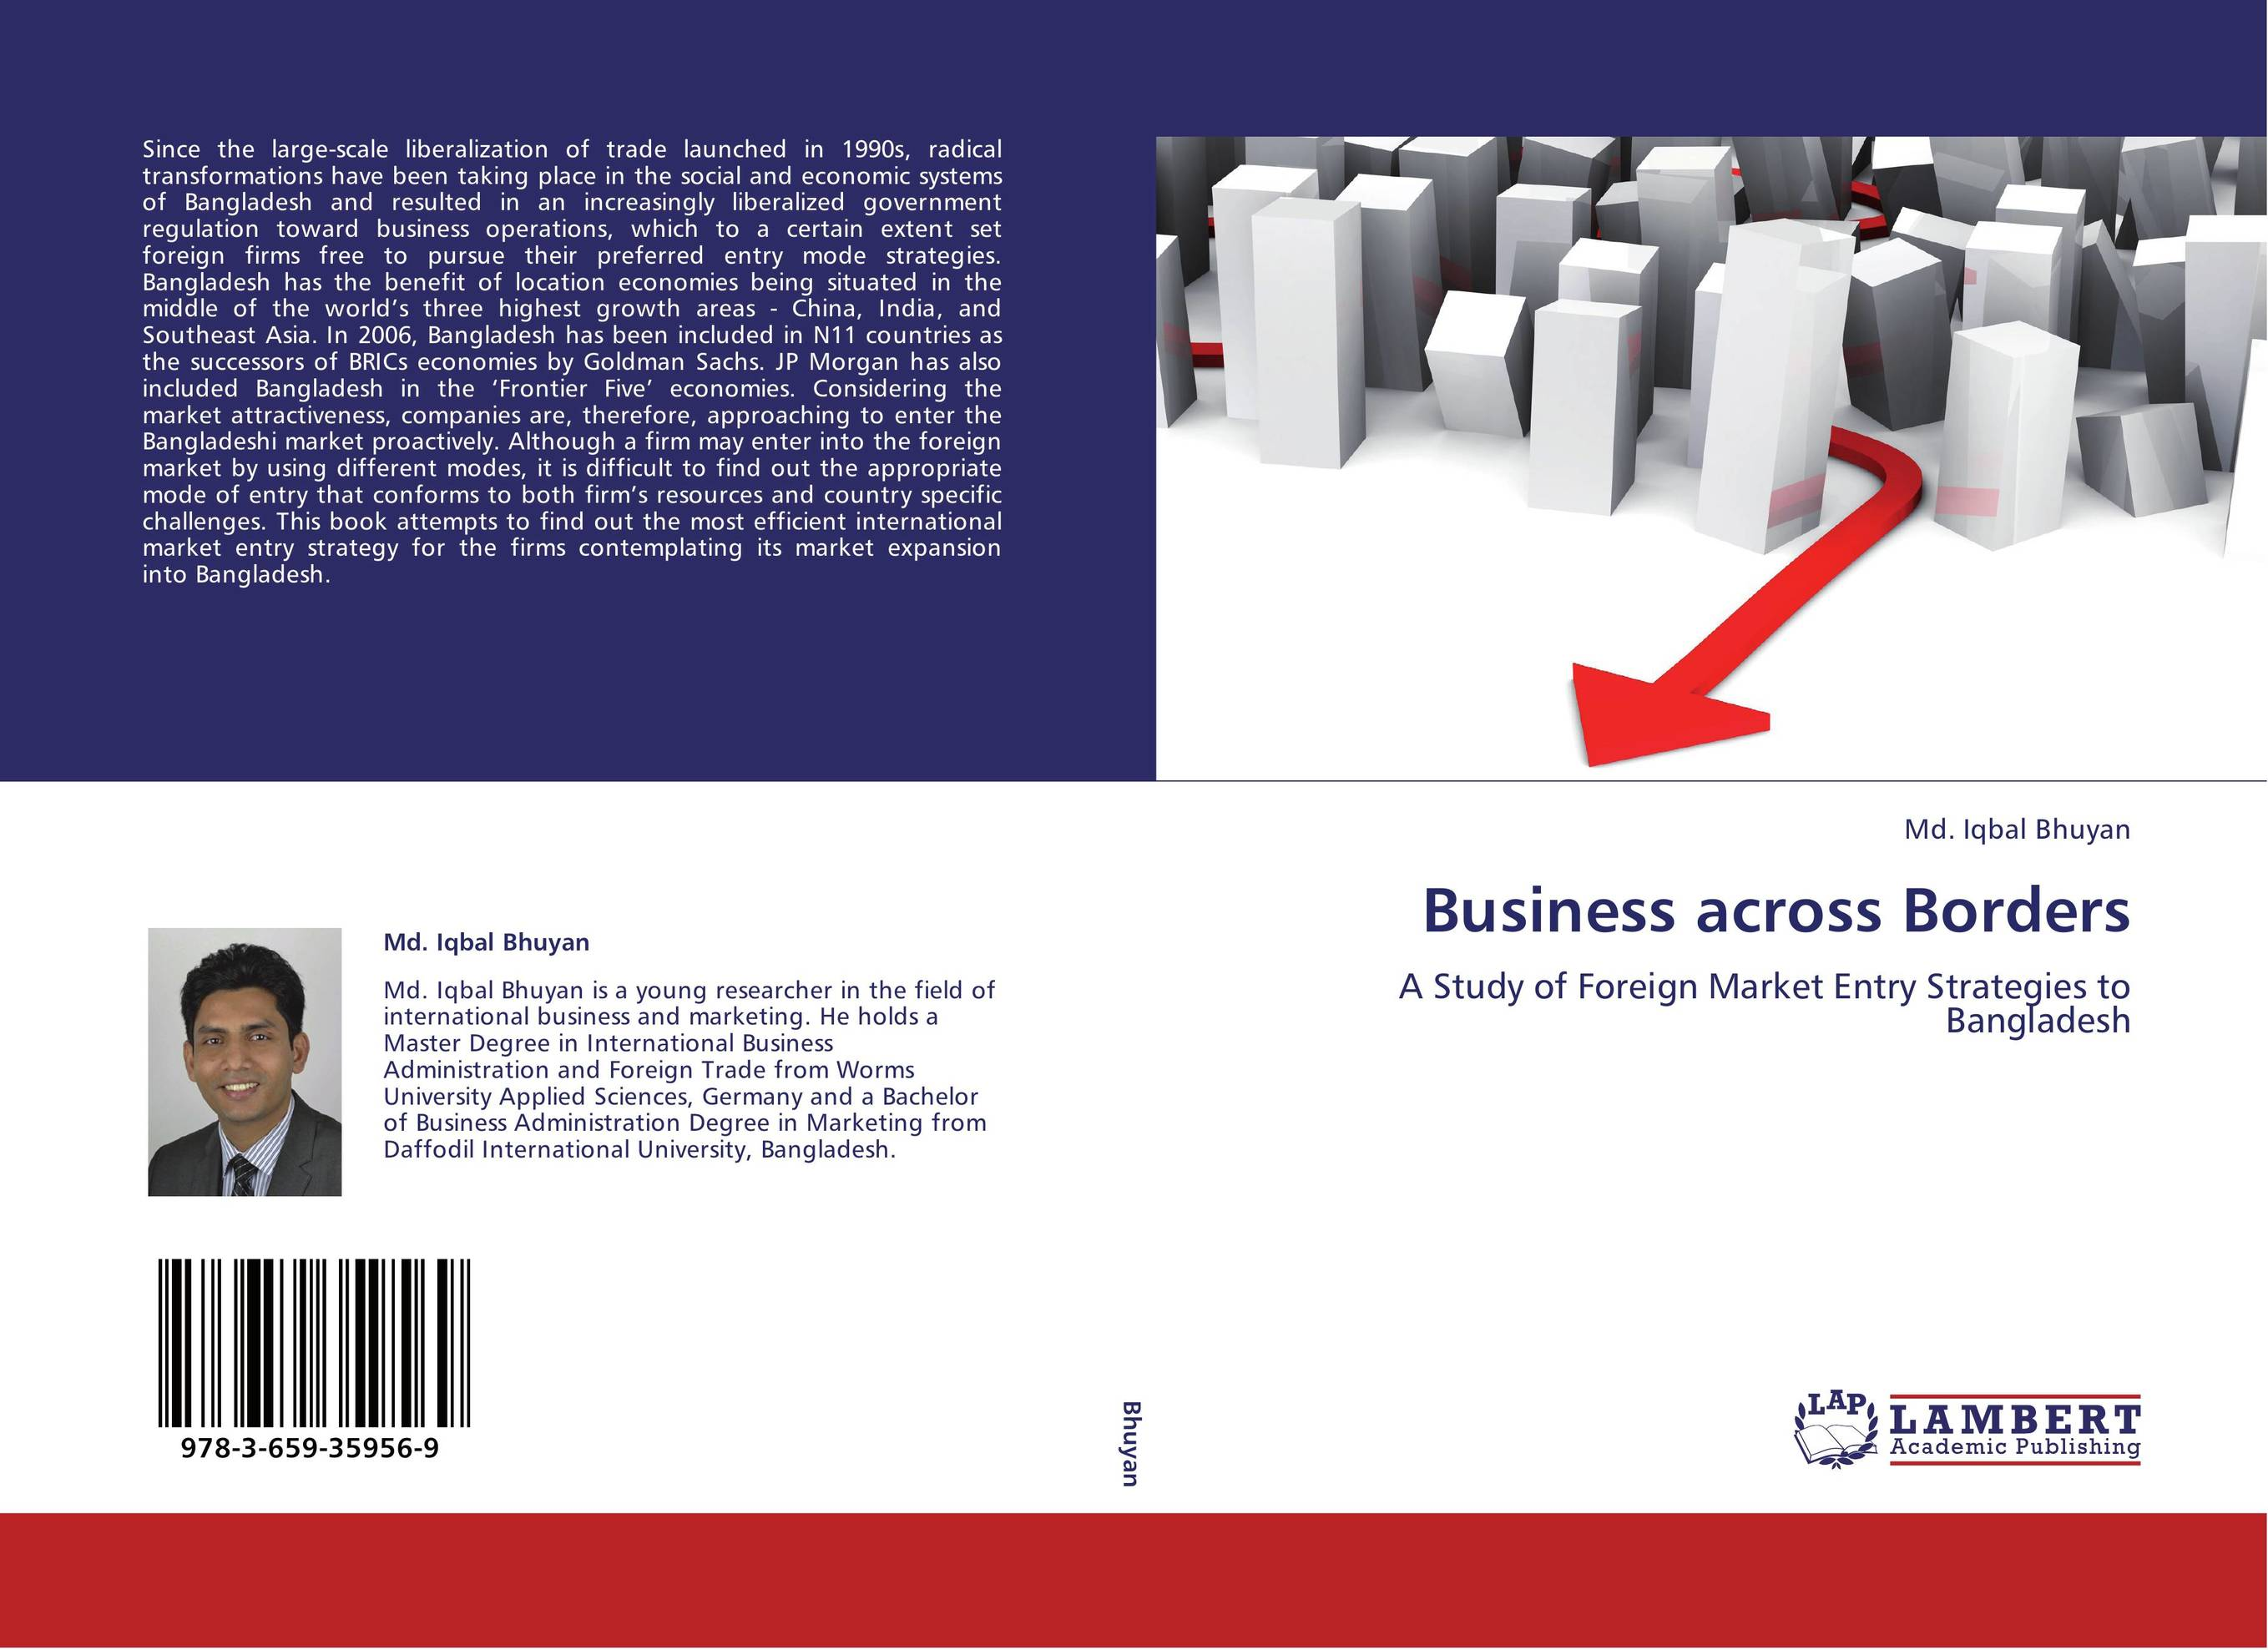 a research on preparations of companies prior to engaging foreign market Rules - 2008 fr doc  research, and industrial  or on the ability of united states-based companies to compete with foreign-based companies in domestic and.